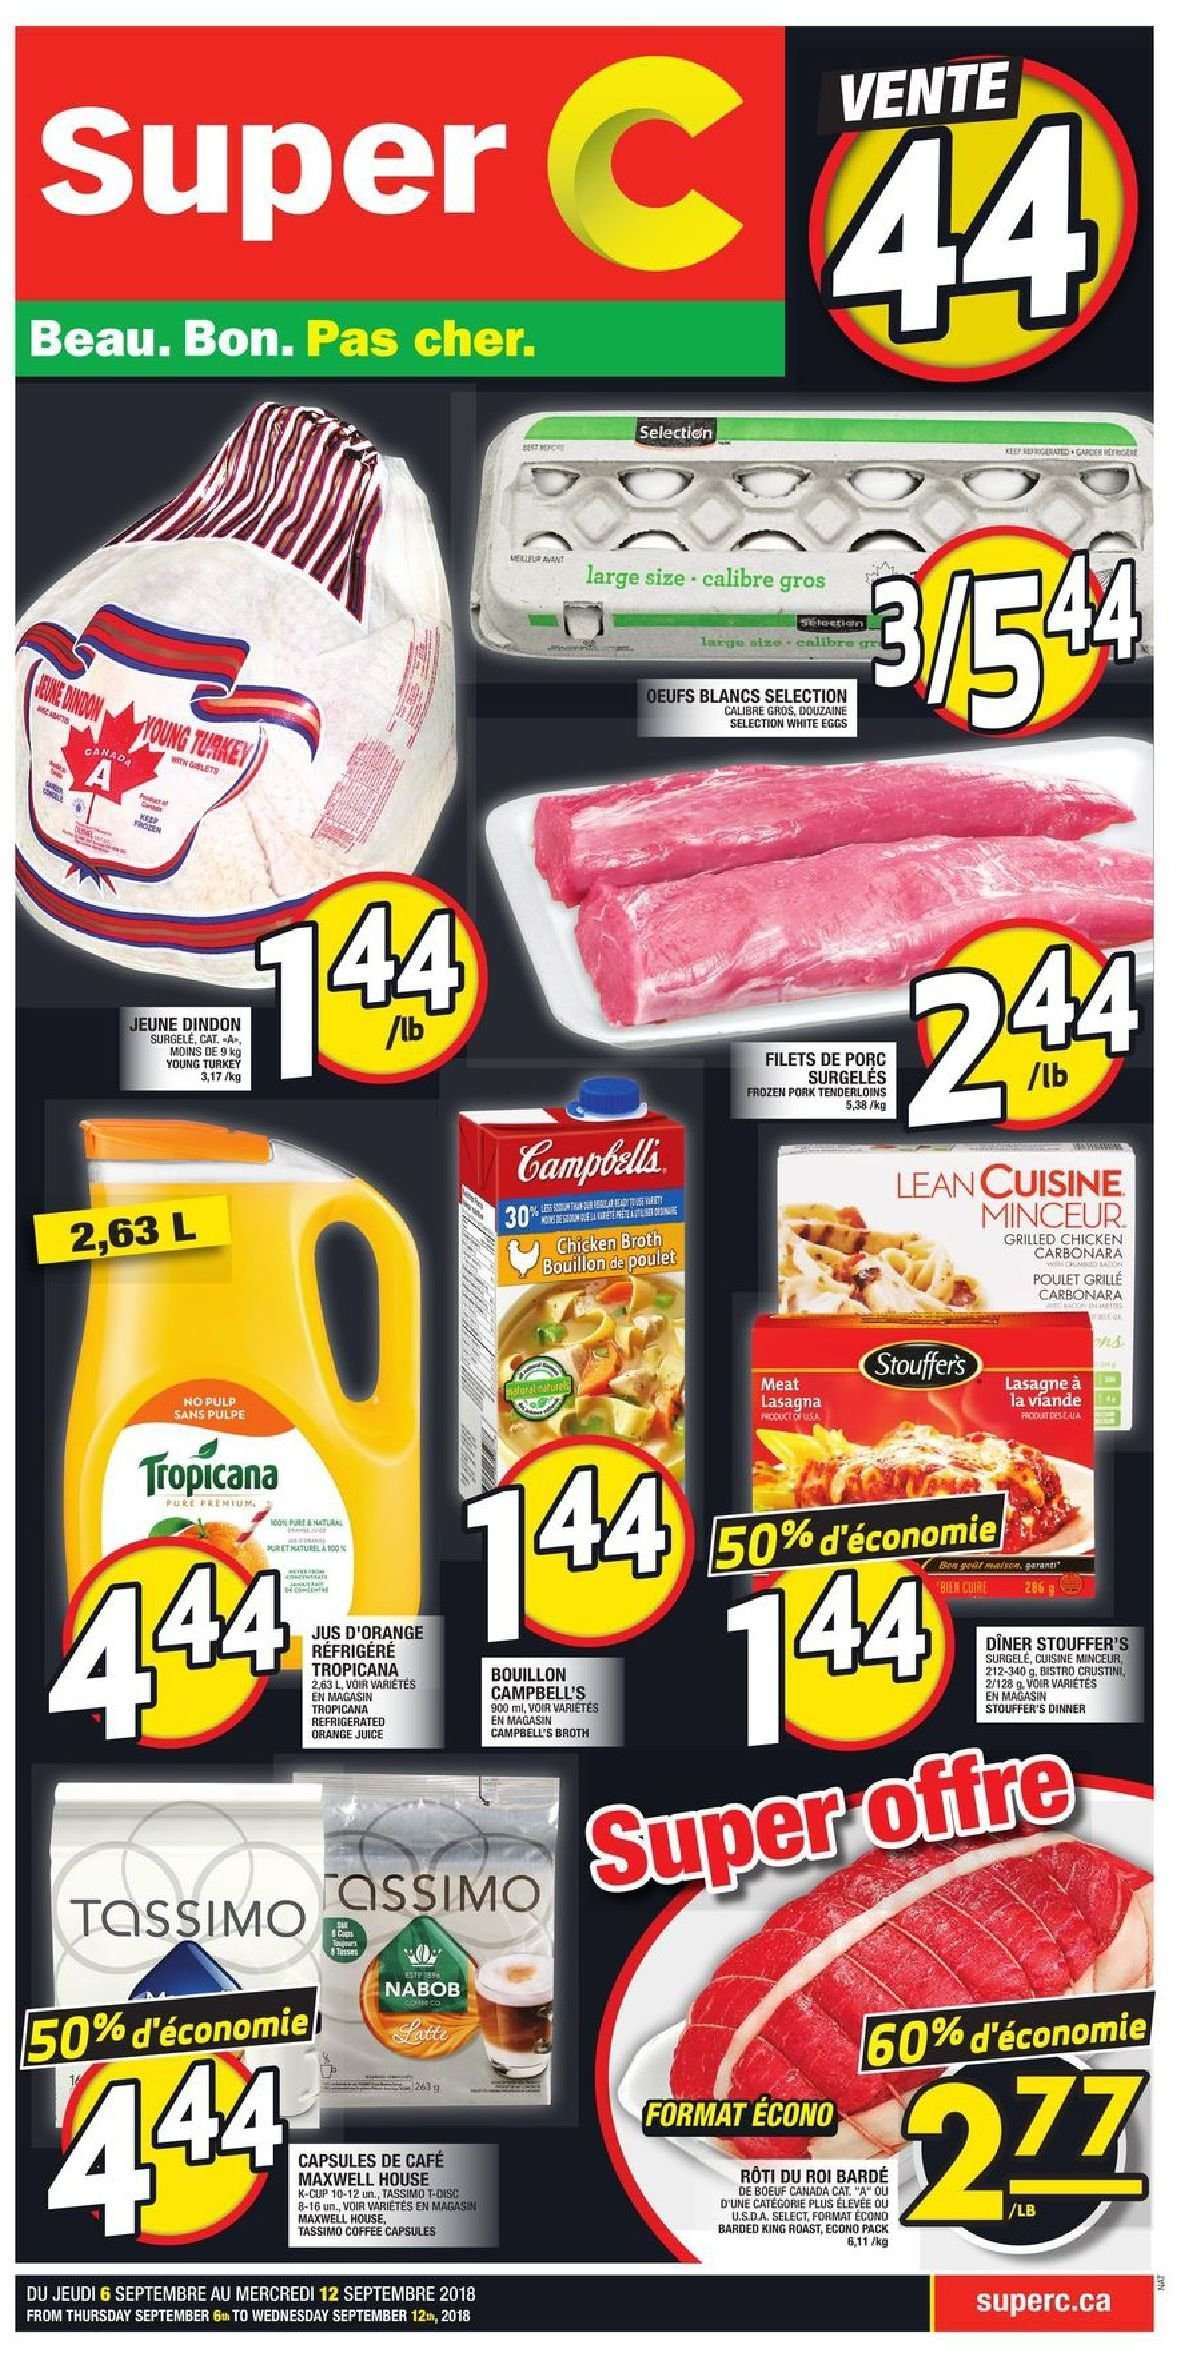 Super C Flyer - September 06, 2018 - September 12, 2018 - Sales products - bouillon, campbell's, capsules, coffee, cup, eggs, frozen, lasagne, maxwell house, turkey, pork meat, chicken, chicken broth, orange juice, juice, poulet, cafe, viande, porc, bœuf, grille, œufs, lasagnes, tropicana, pulpé, egg. Page 1.